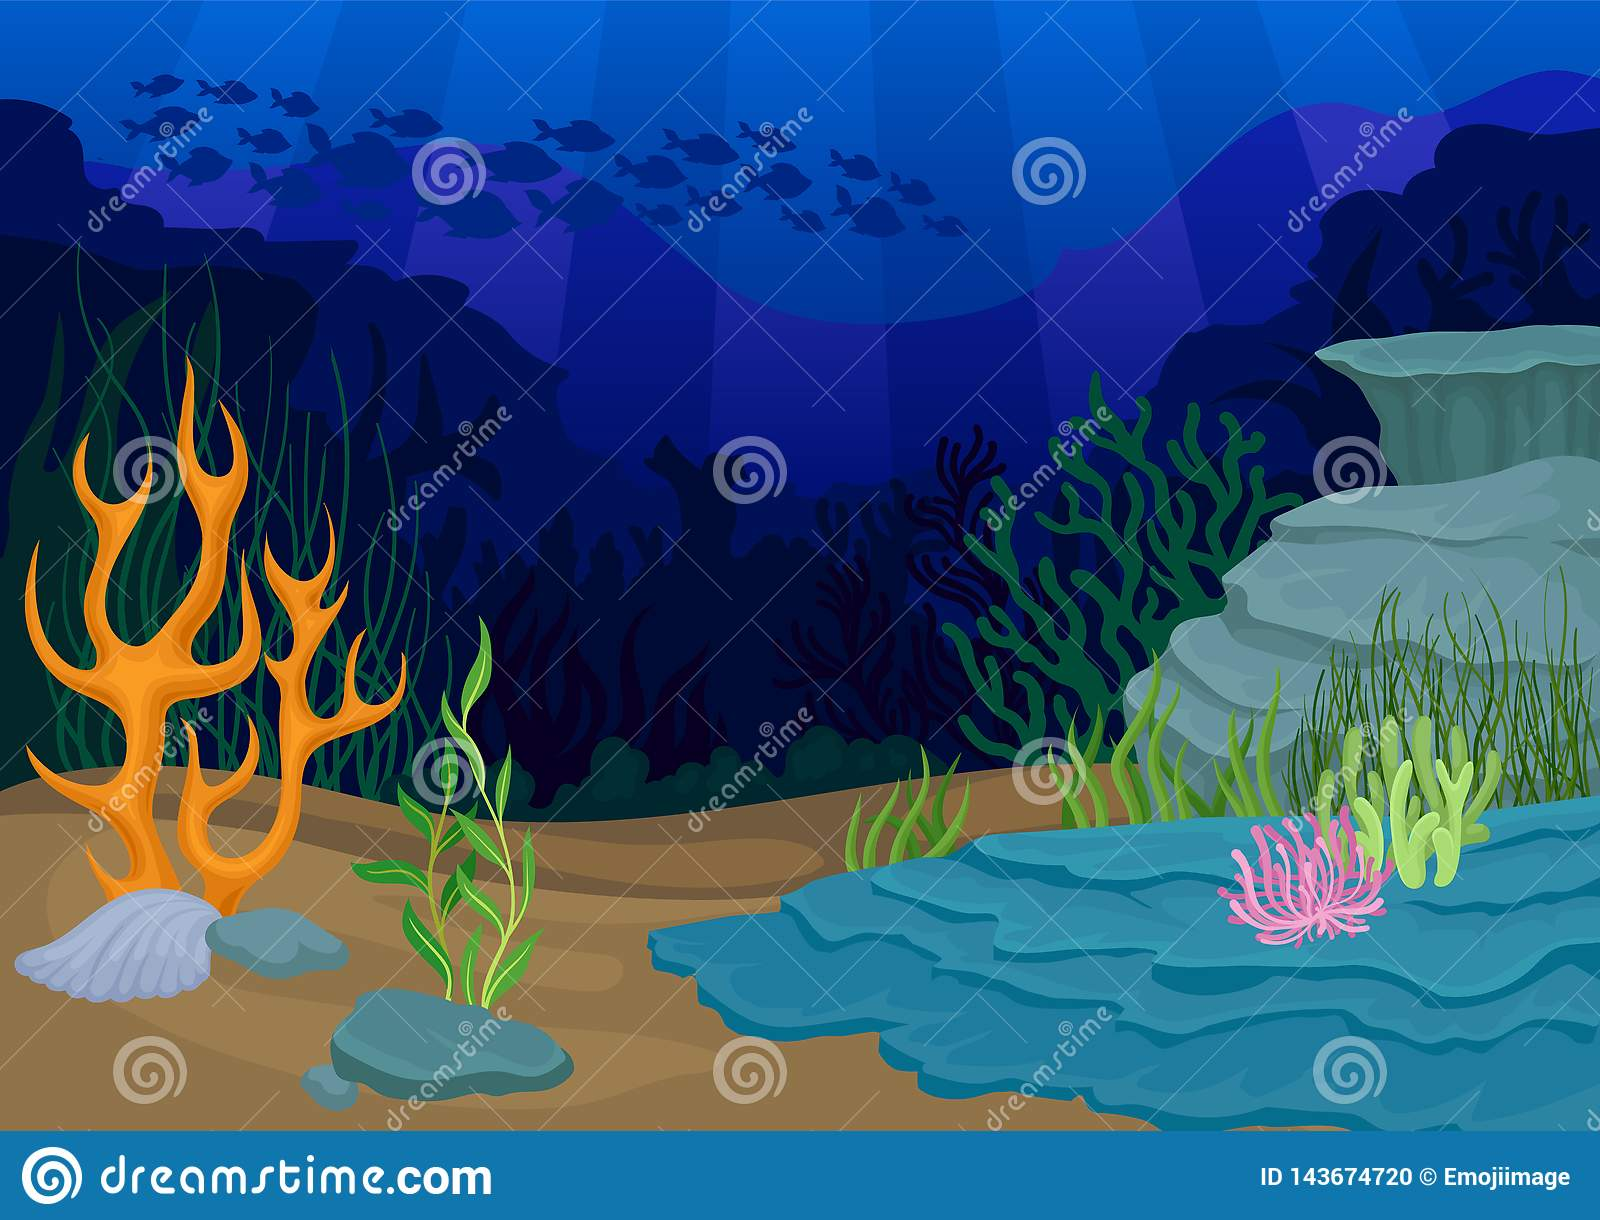 Seascapes concept. oral reef and school of fish.